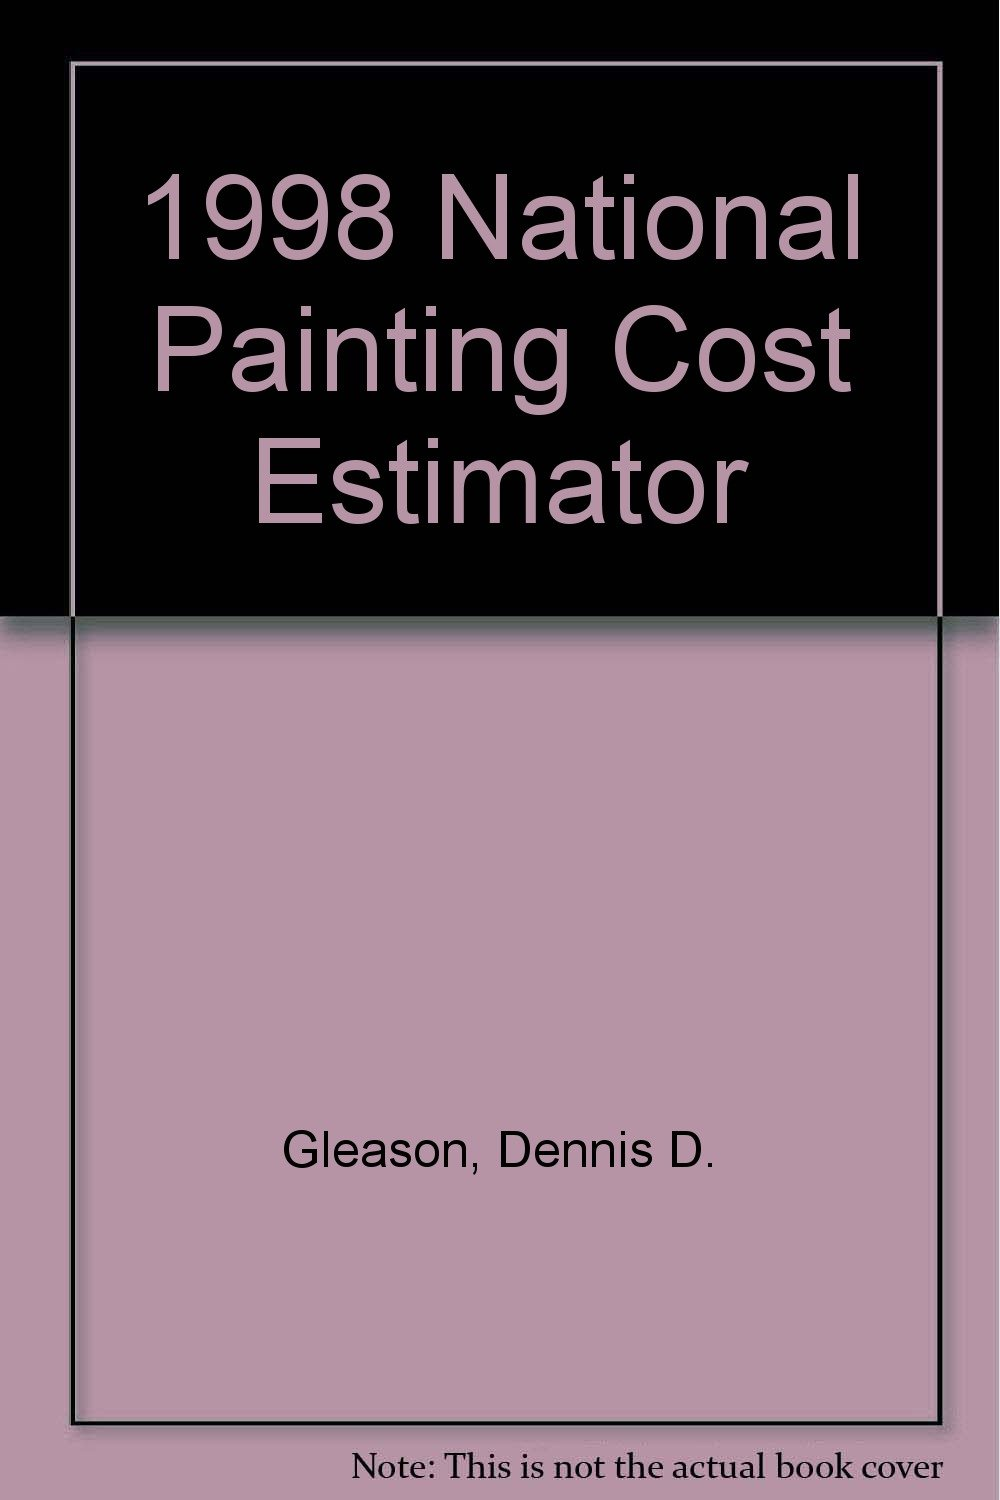 1998 National Painting Cost Estimator (National Painting Cost Estimator (W/CD))